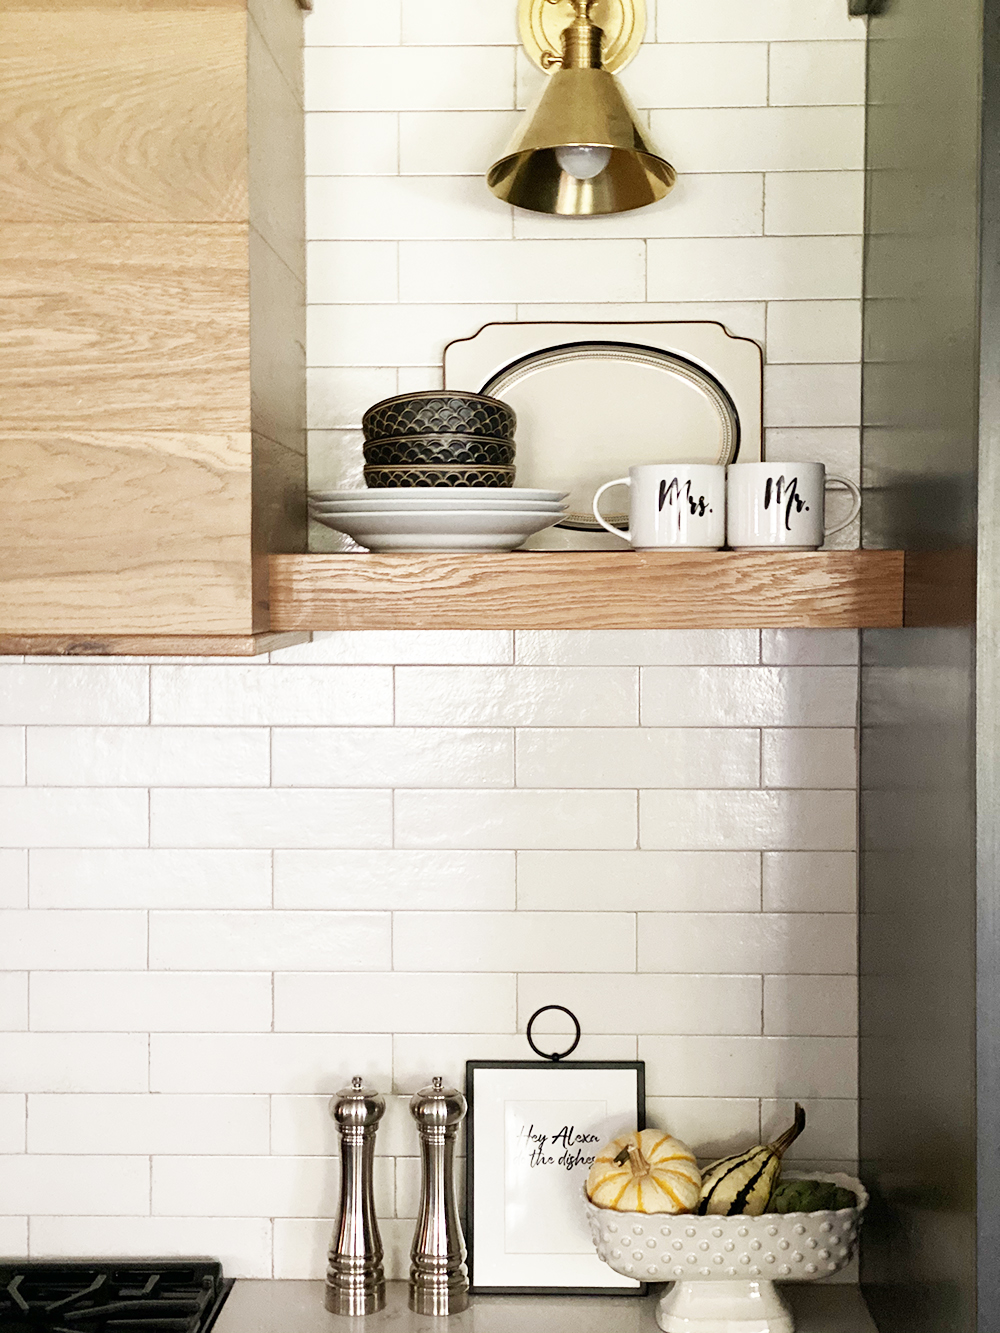 Affordable Fall Front Porch and Tabletop Decor Ideas wood vent hood with subway tile backsplash and fall decor kitchen styling with mr and mrs coffee mugs